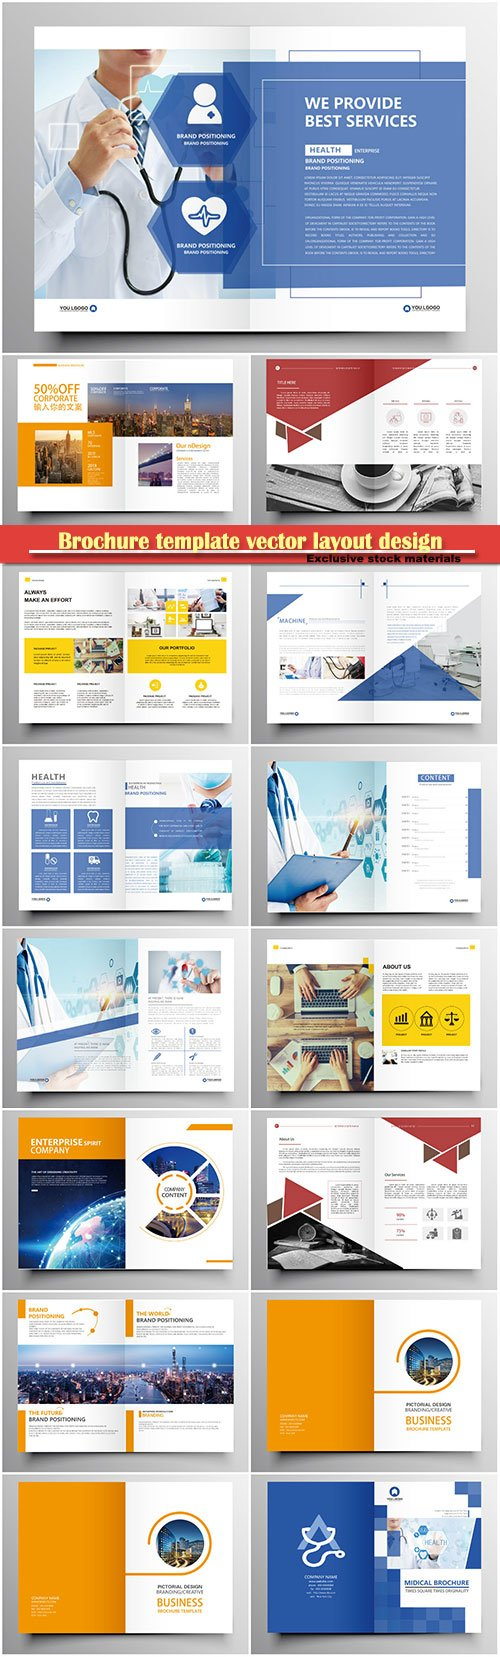 Brochure template vector layout design, corporate business annual report, magazine, flyer mockup # 132